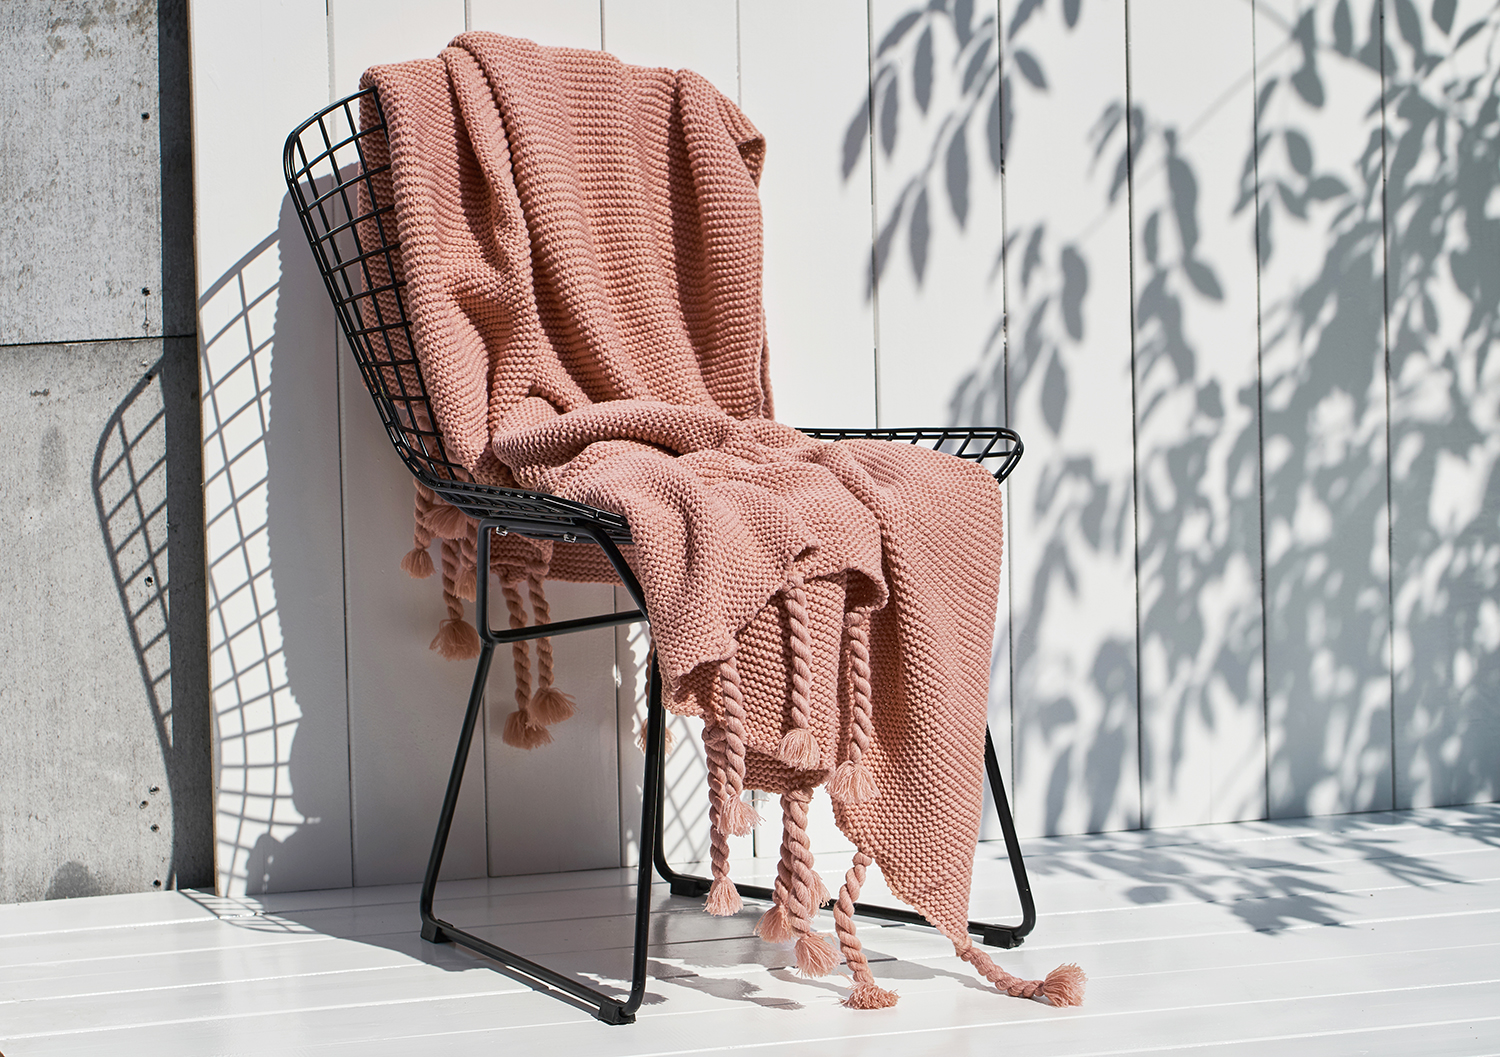 BOJAY  New Nordic style 100% Acrylic Knit Bed Blanket Home Soft Cover Hotel Tassel Knitted Throw Blanket